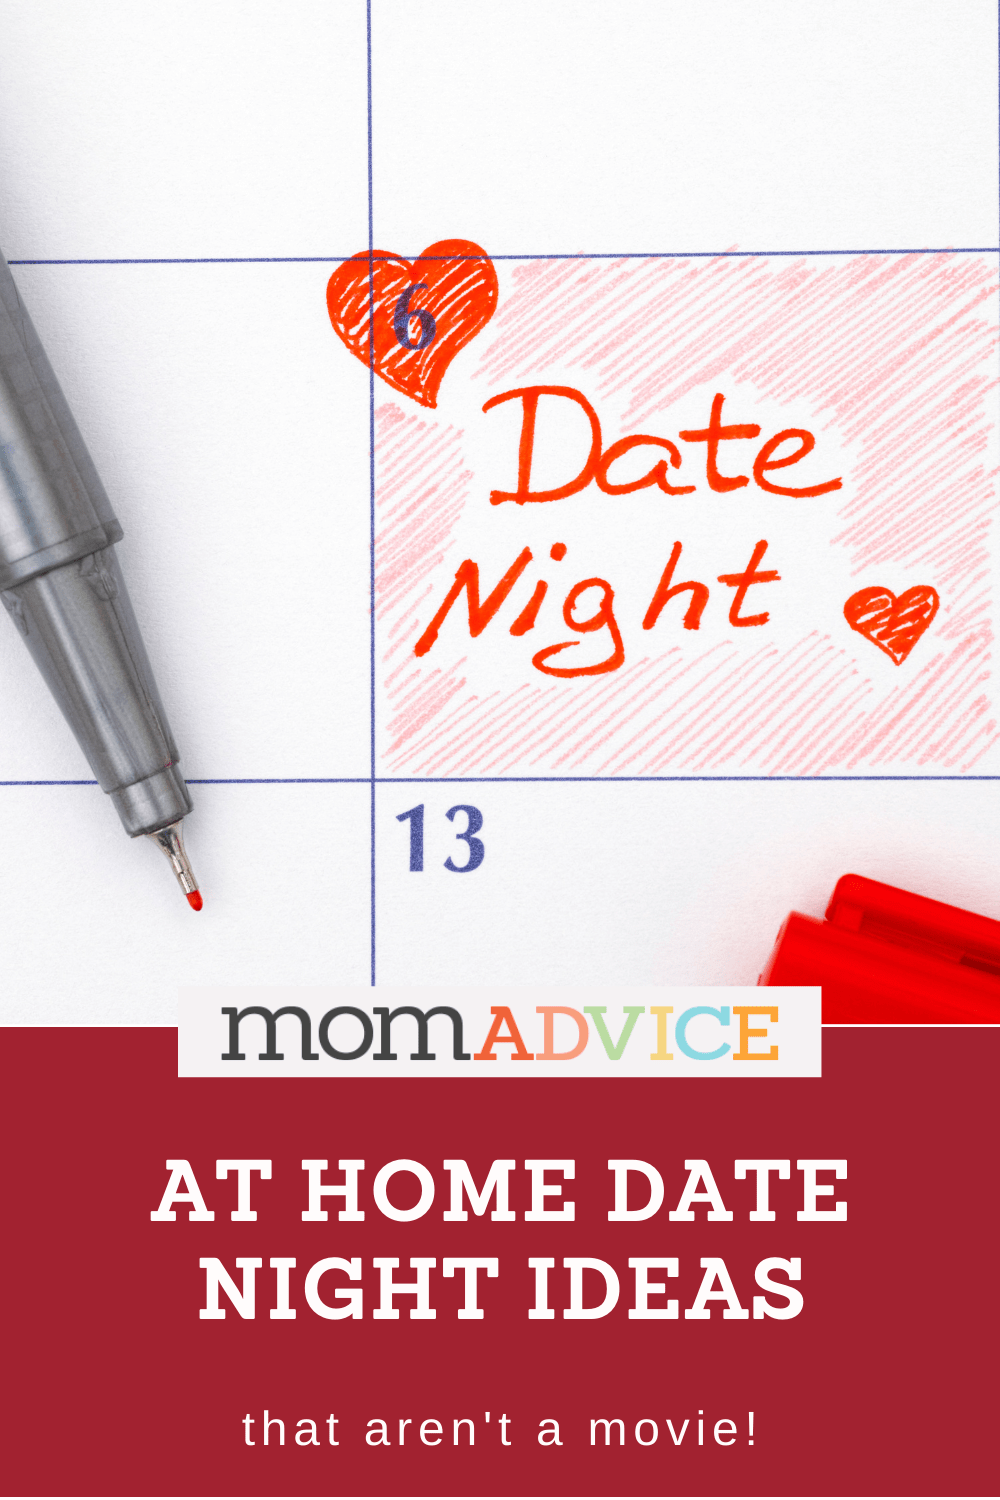 At Home Date Night Ideas from MomAdvice.om